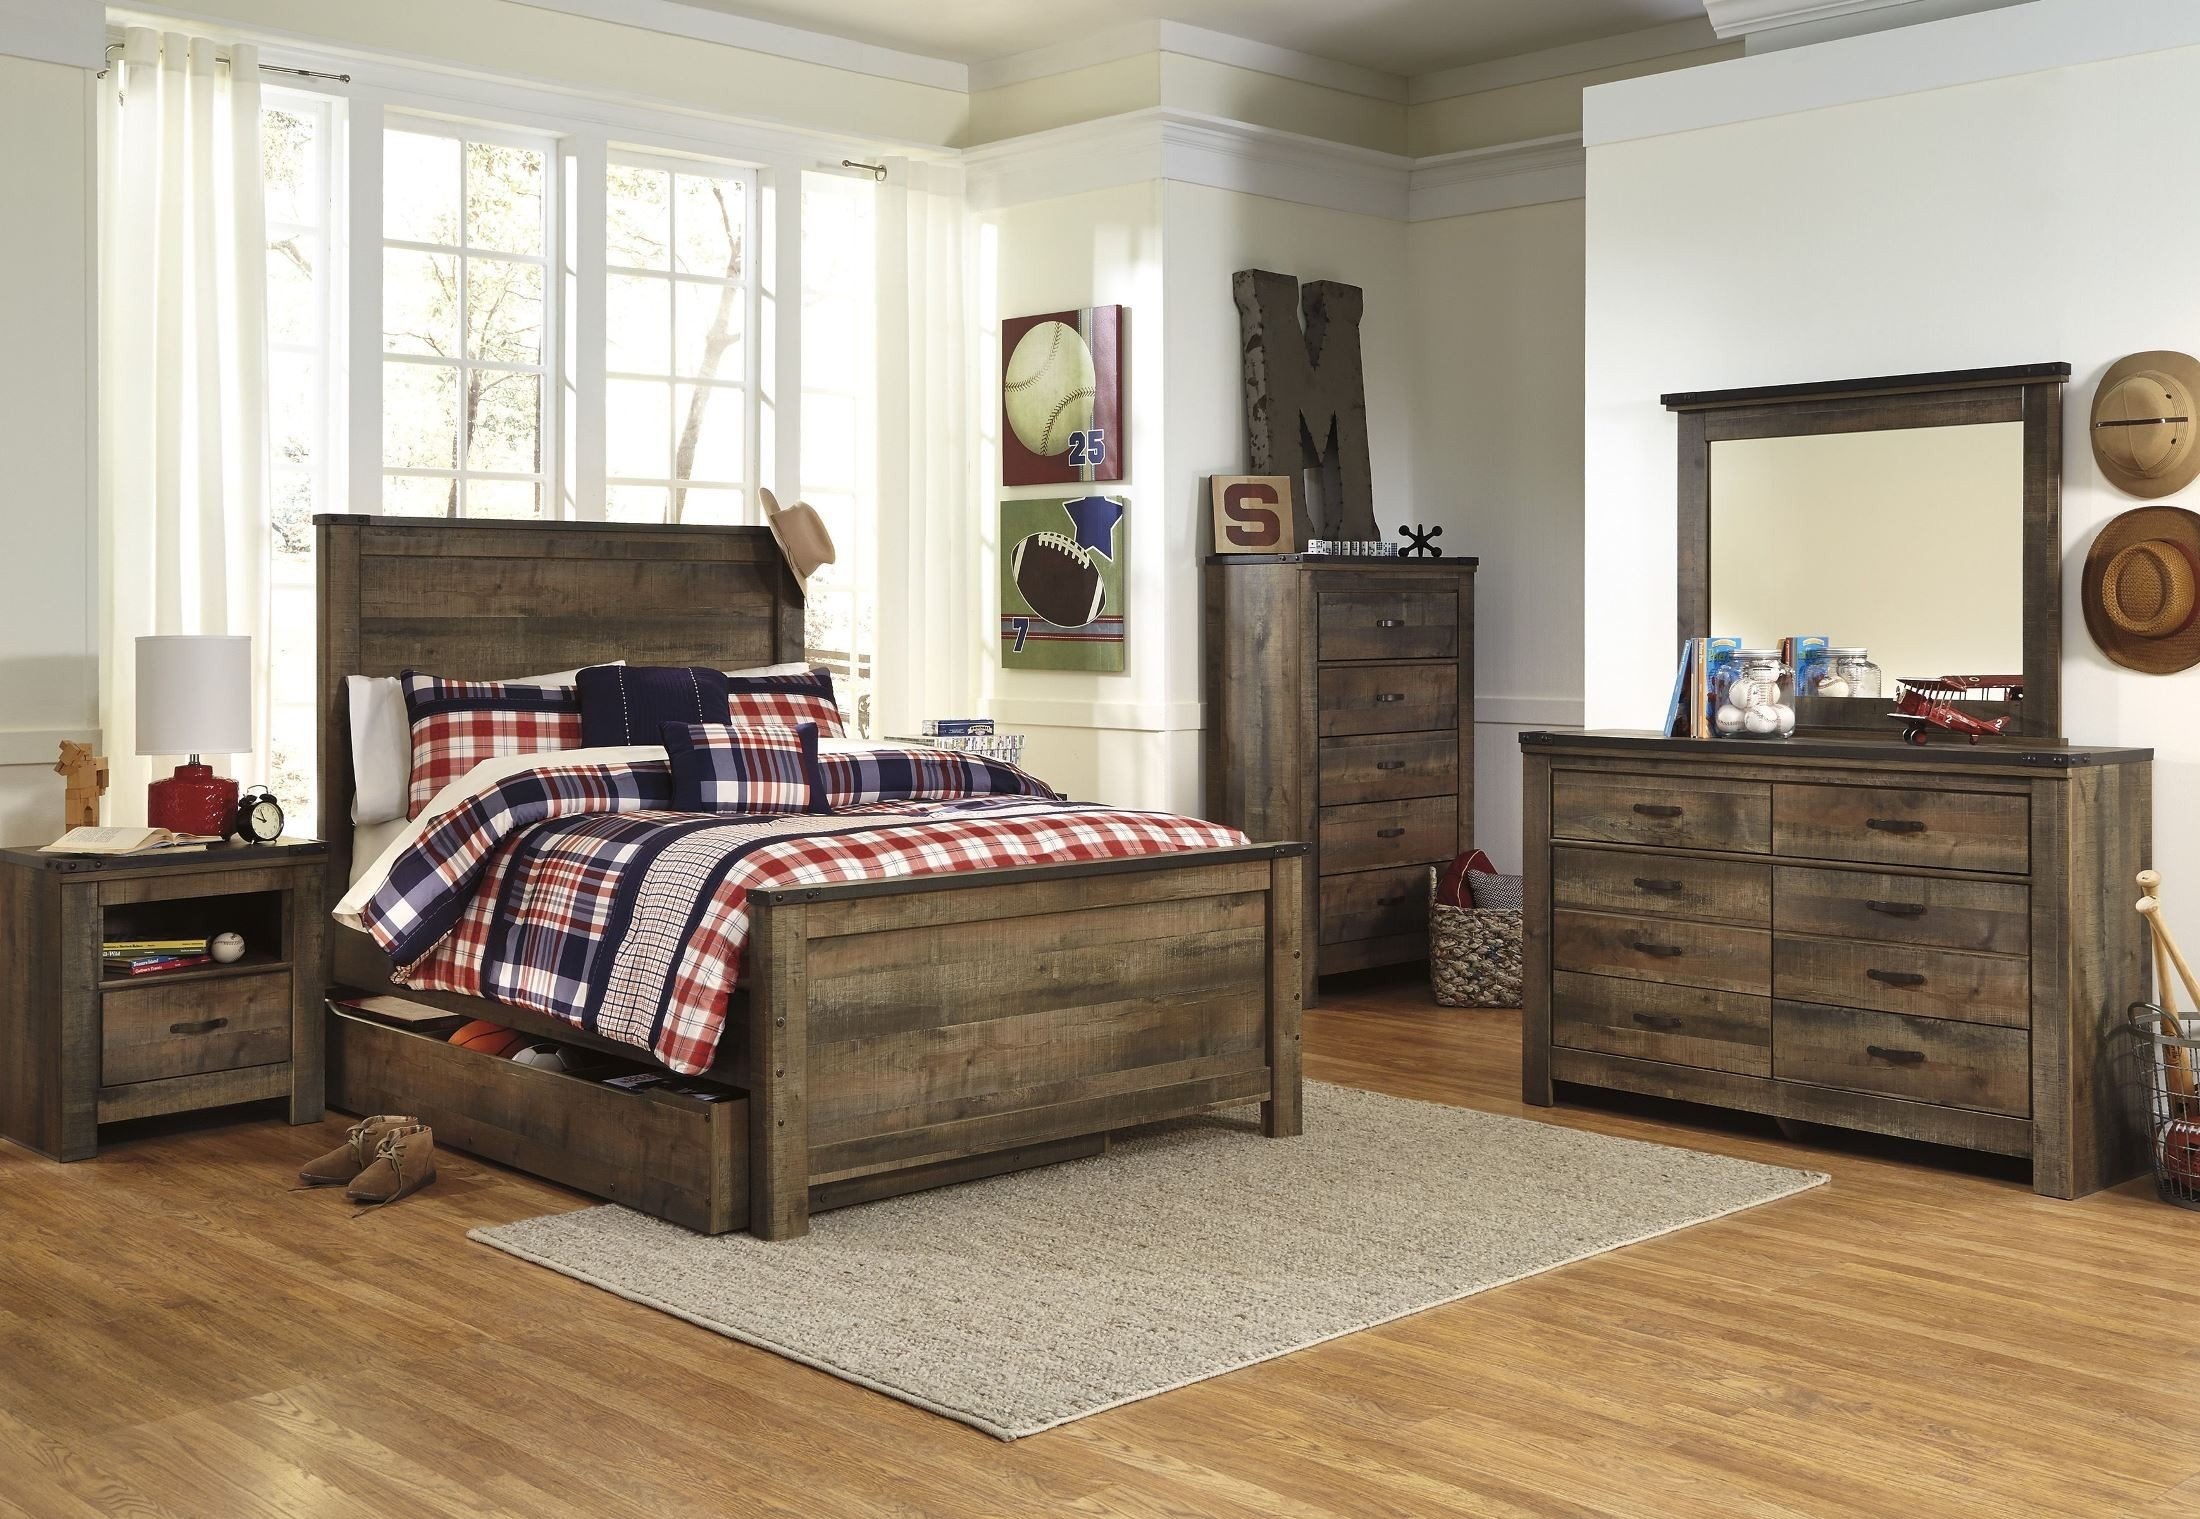 Trinell brown panel bedroom set 1stopbedrooms - Bedroom furniture sets buy now pay later ...